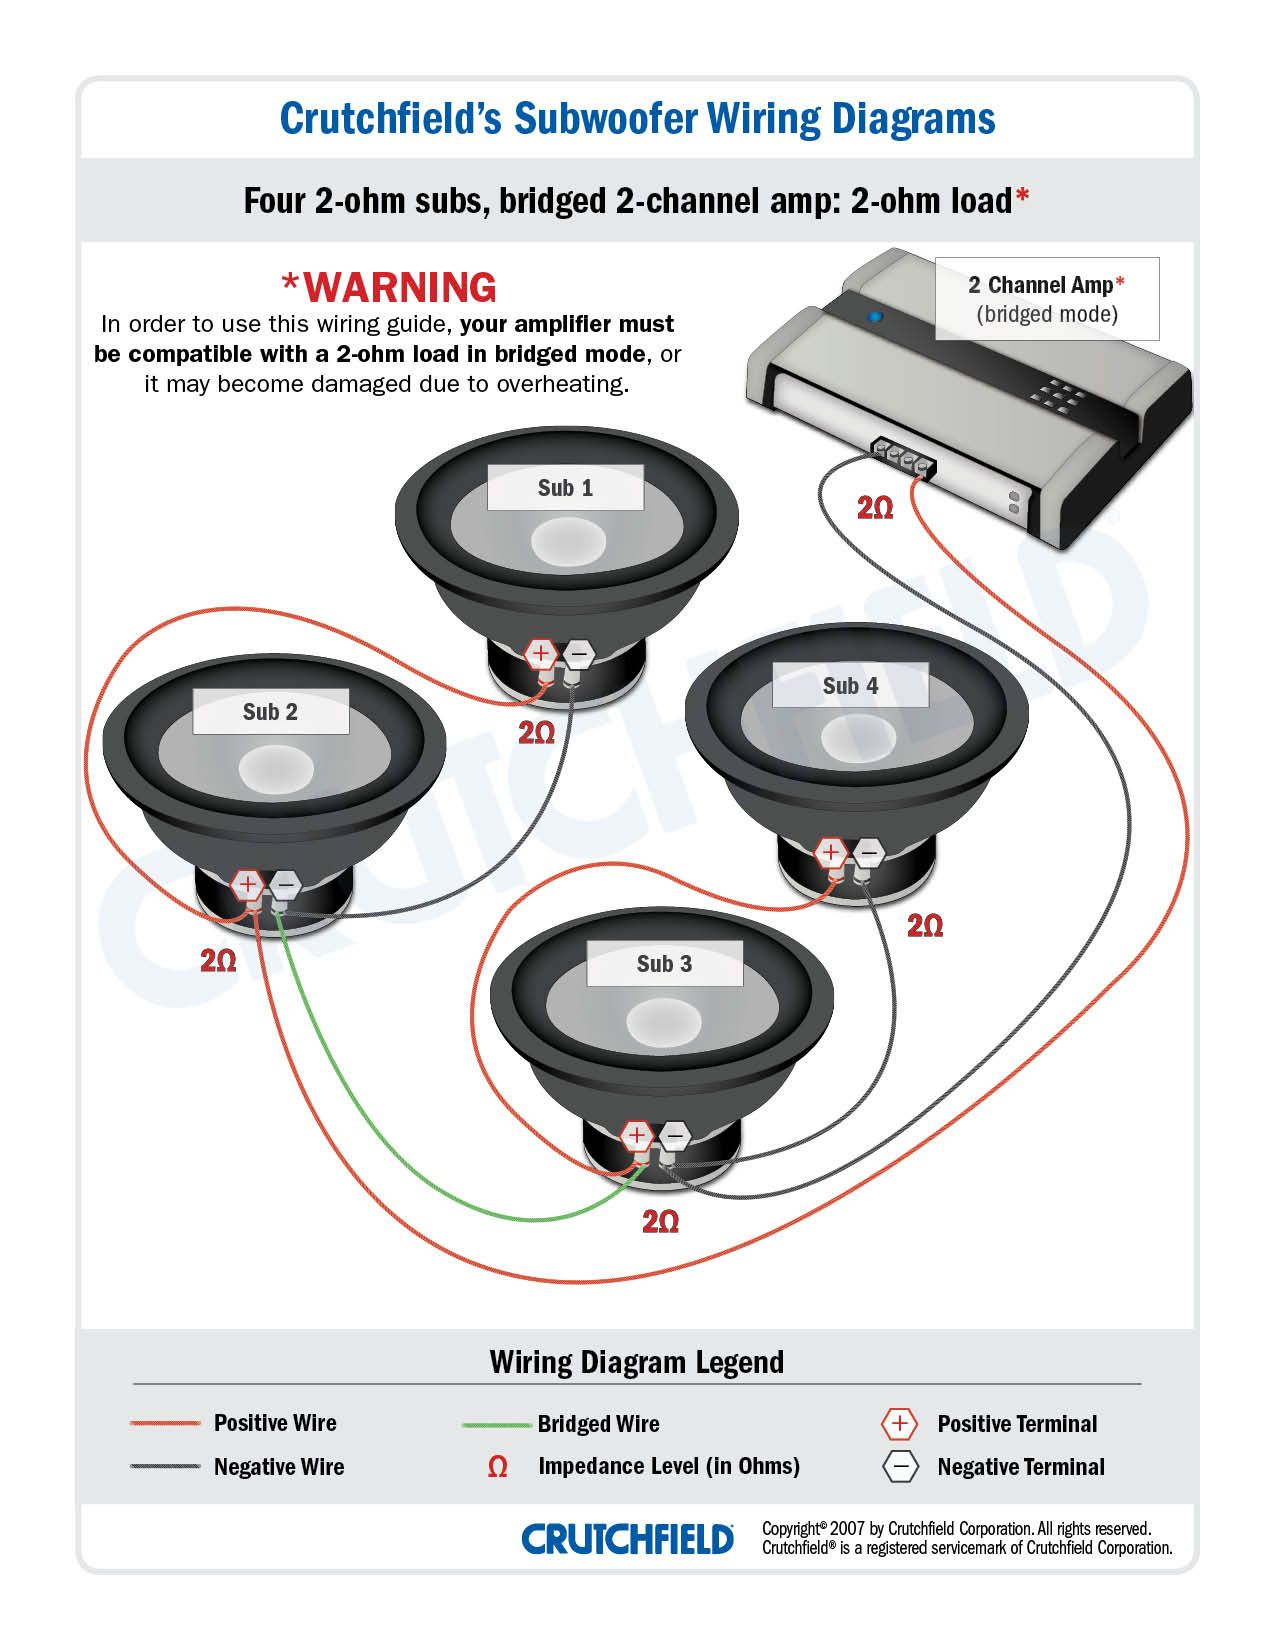 hight resolution of top 10 subwoofer wiring diagram free download 4 svc 2 ohm 2 ch low rh pinterest com 4 ohm subwoofer wiring diagram home subwoofer wiring diagrams